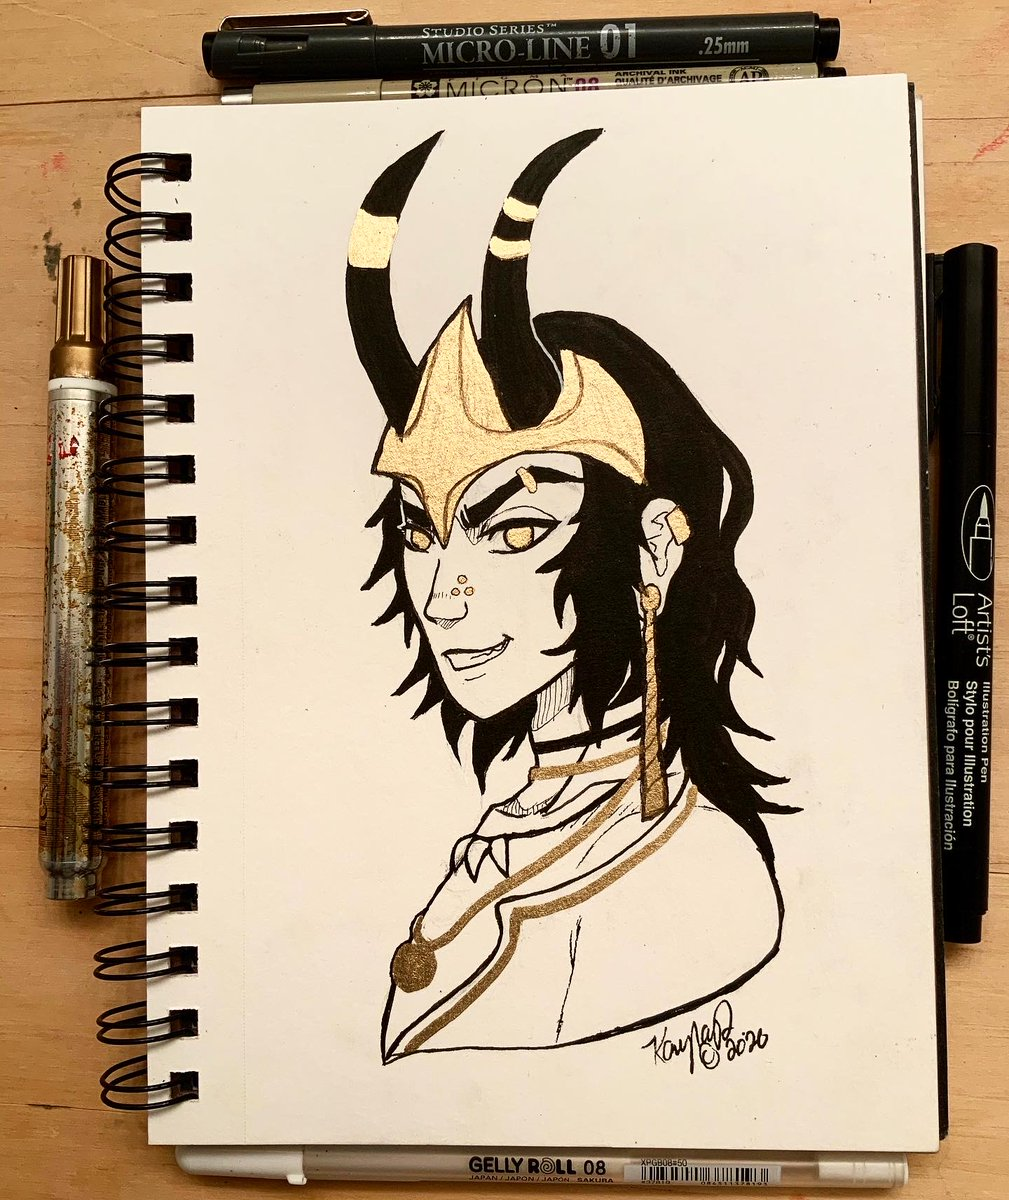 Day 27 - Loki #Loki #trickstergod #norse #norsemythology #mythtober #mythology #mythtobersks #penandink #goldink #Artober2020 https://t.co/I7OUII9bJR